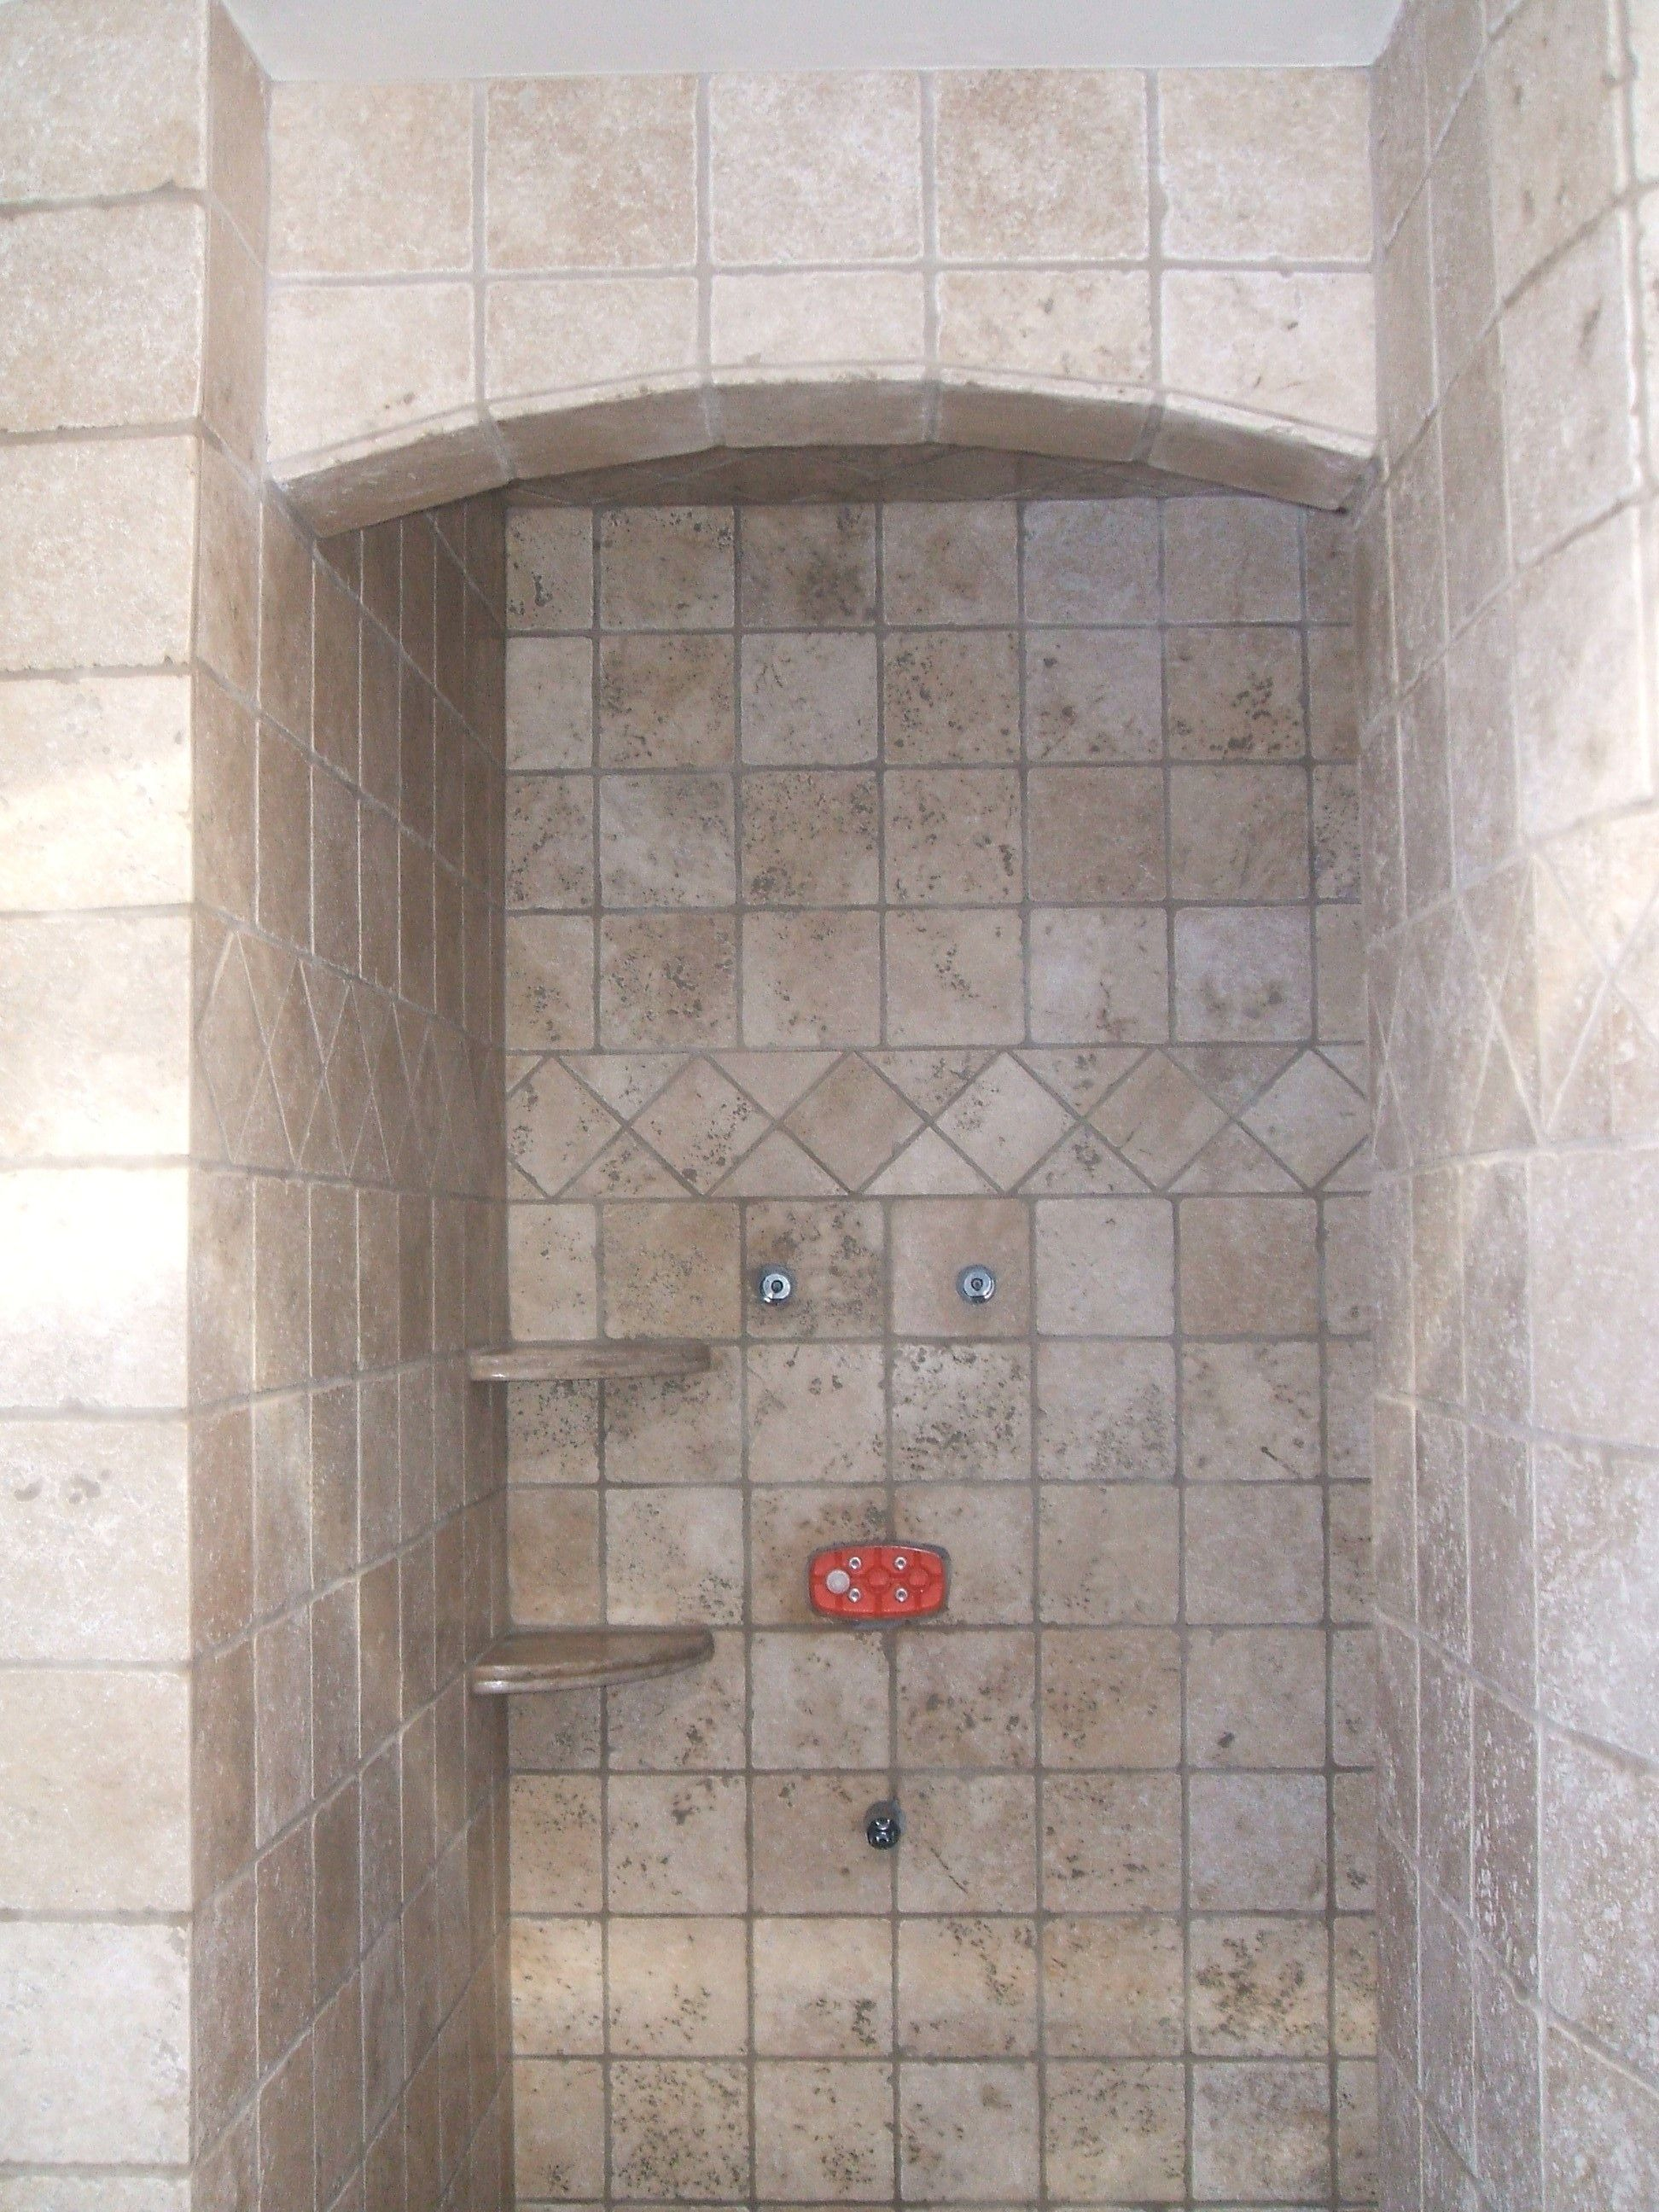 Terrific ceramic tile shower ideas small bathrooms with for Ceramic tile bathroom ideas pictures